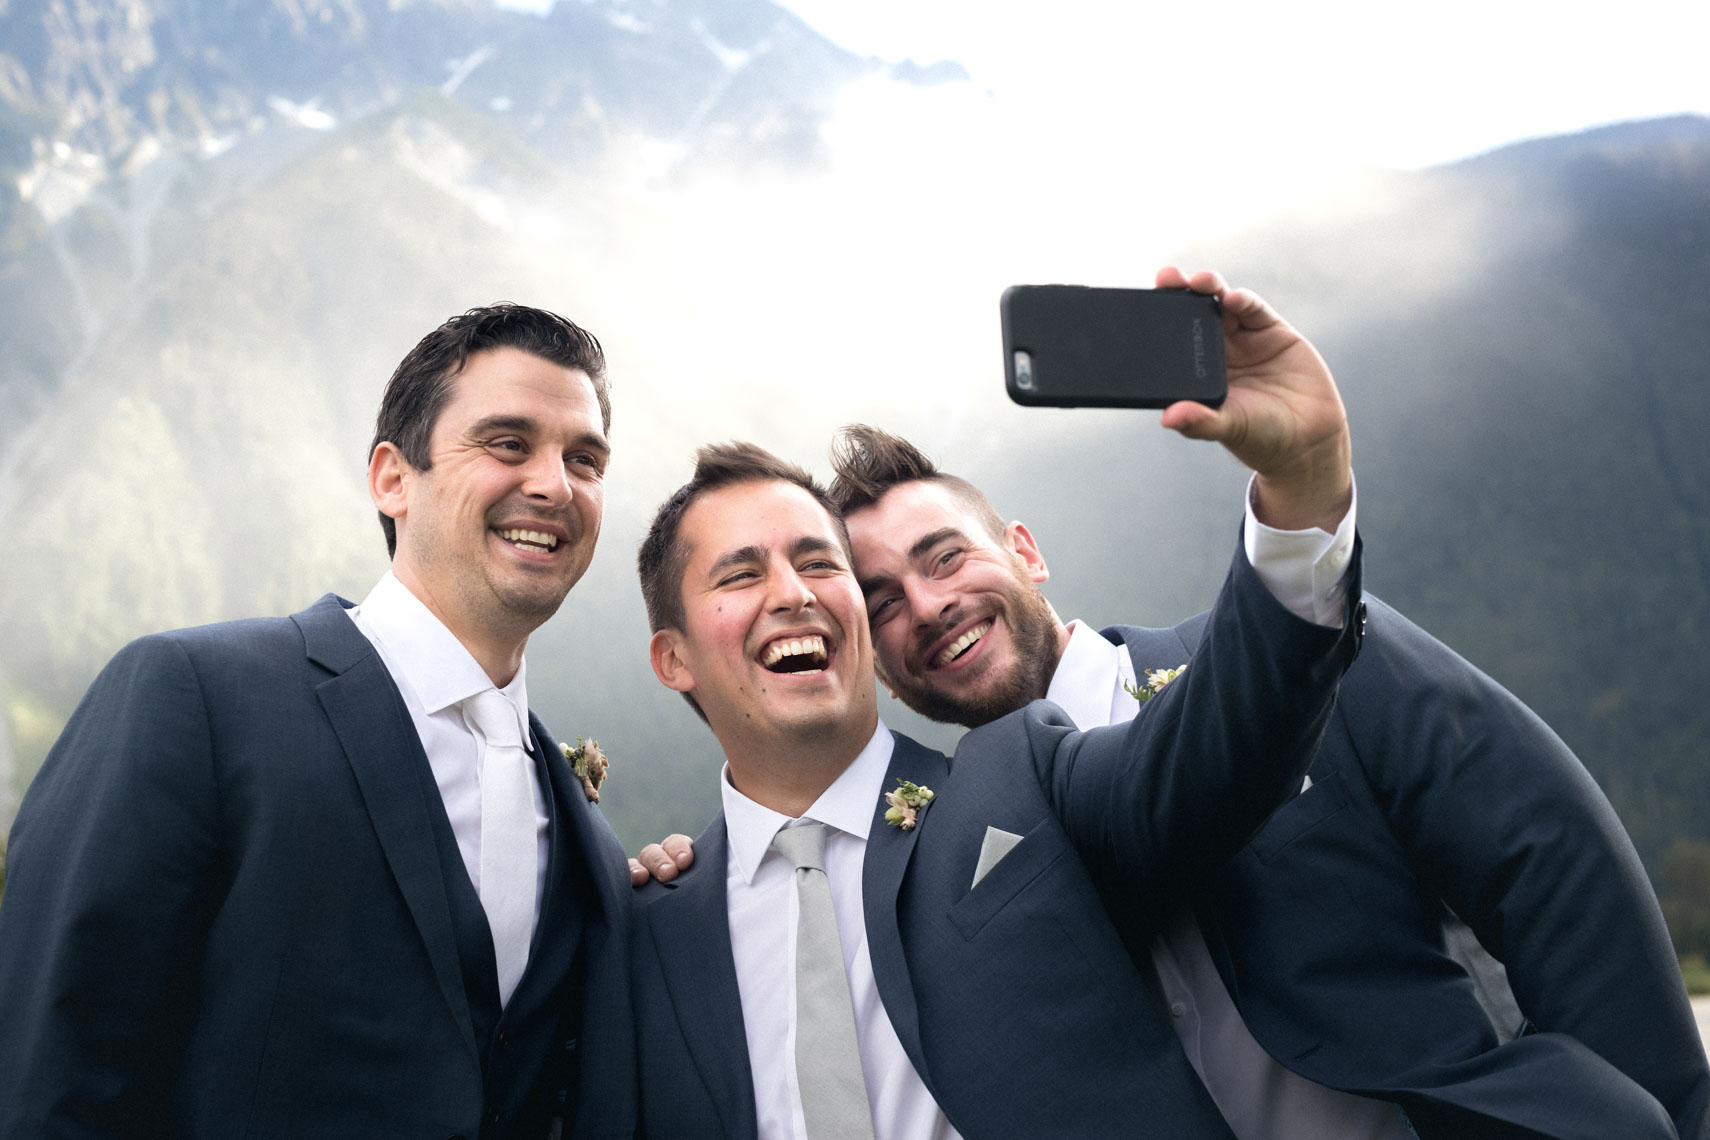 Groomsmen at the big sky golf wedding venue in Pemberton BC